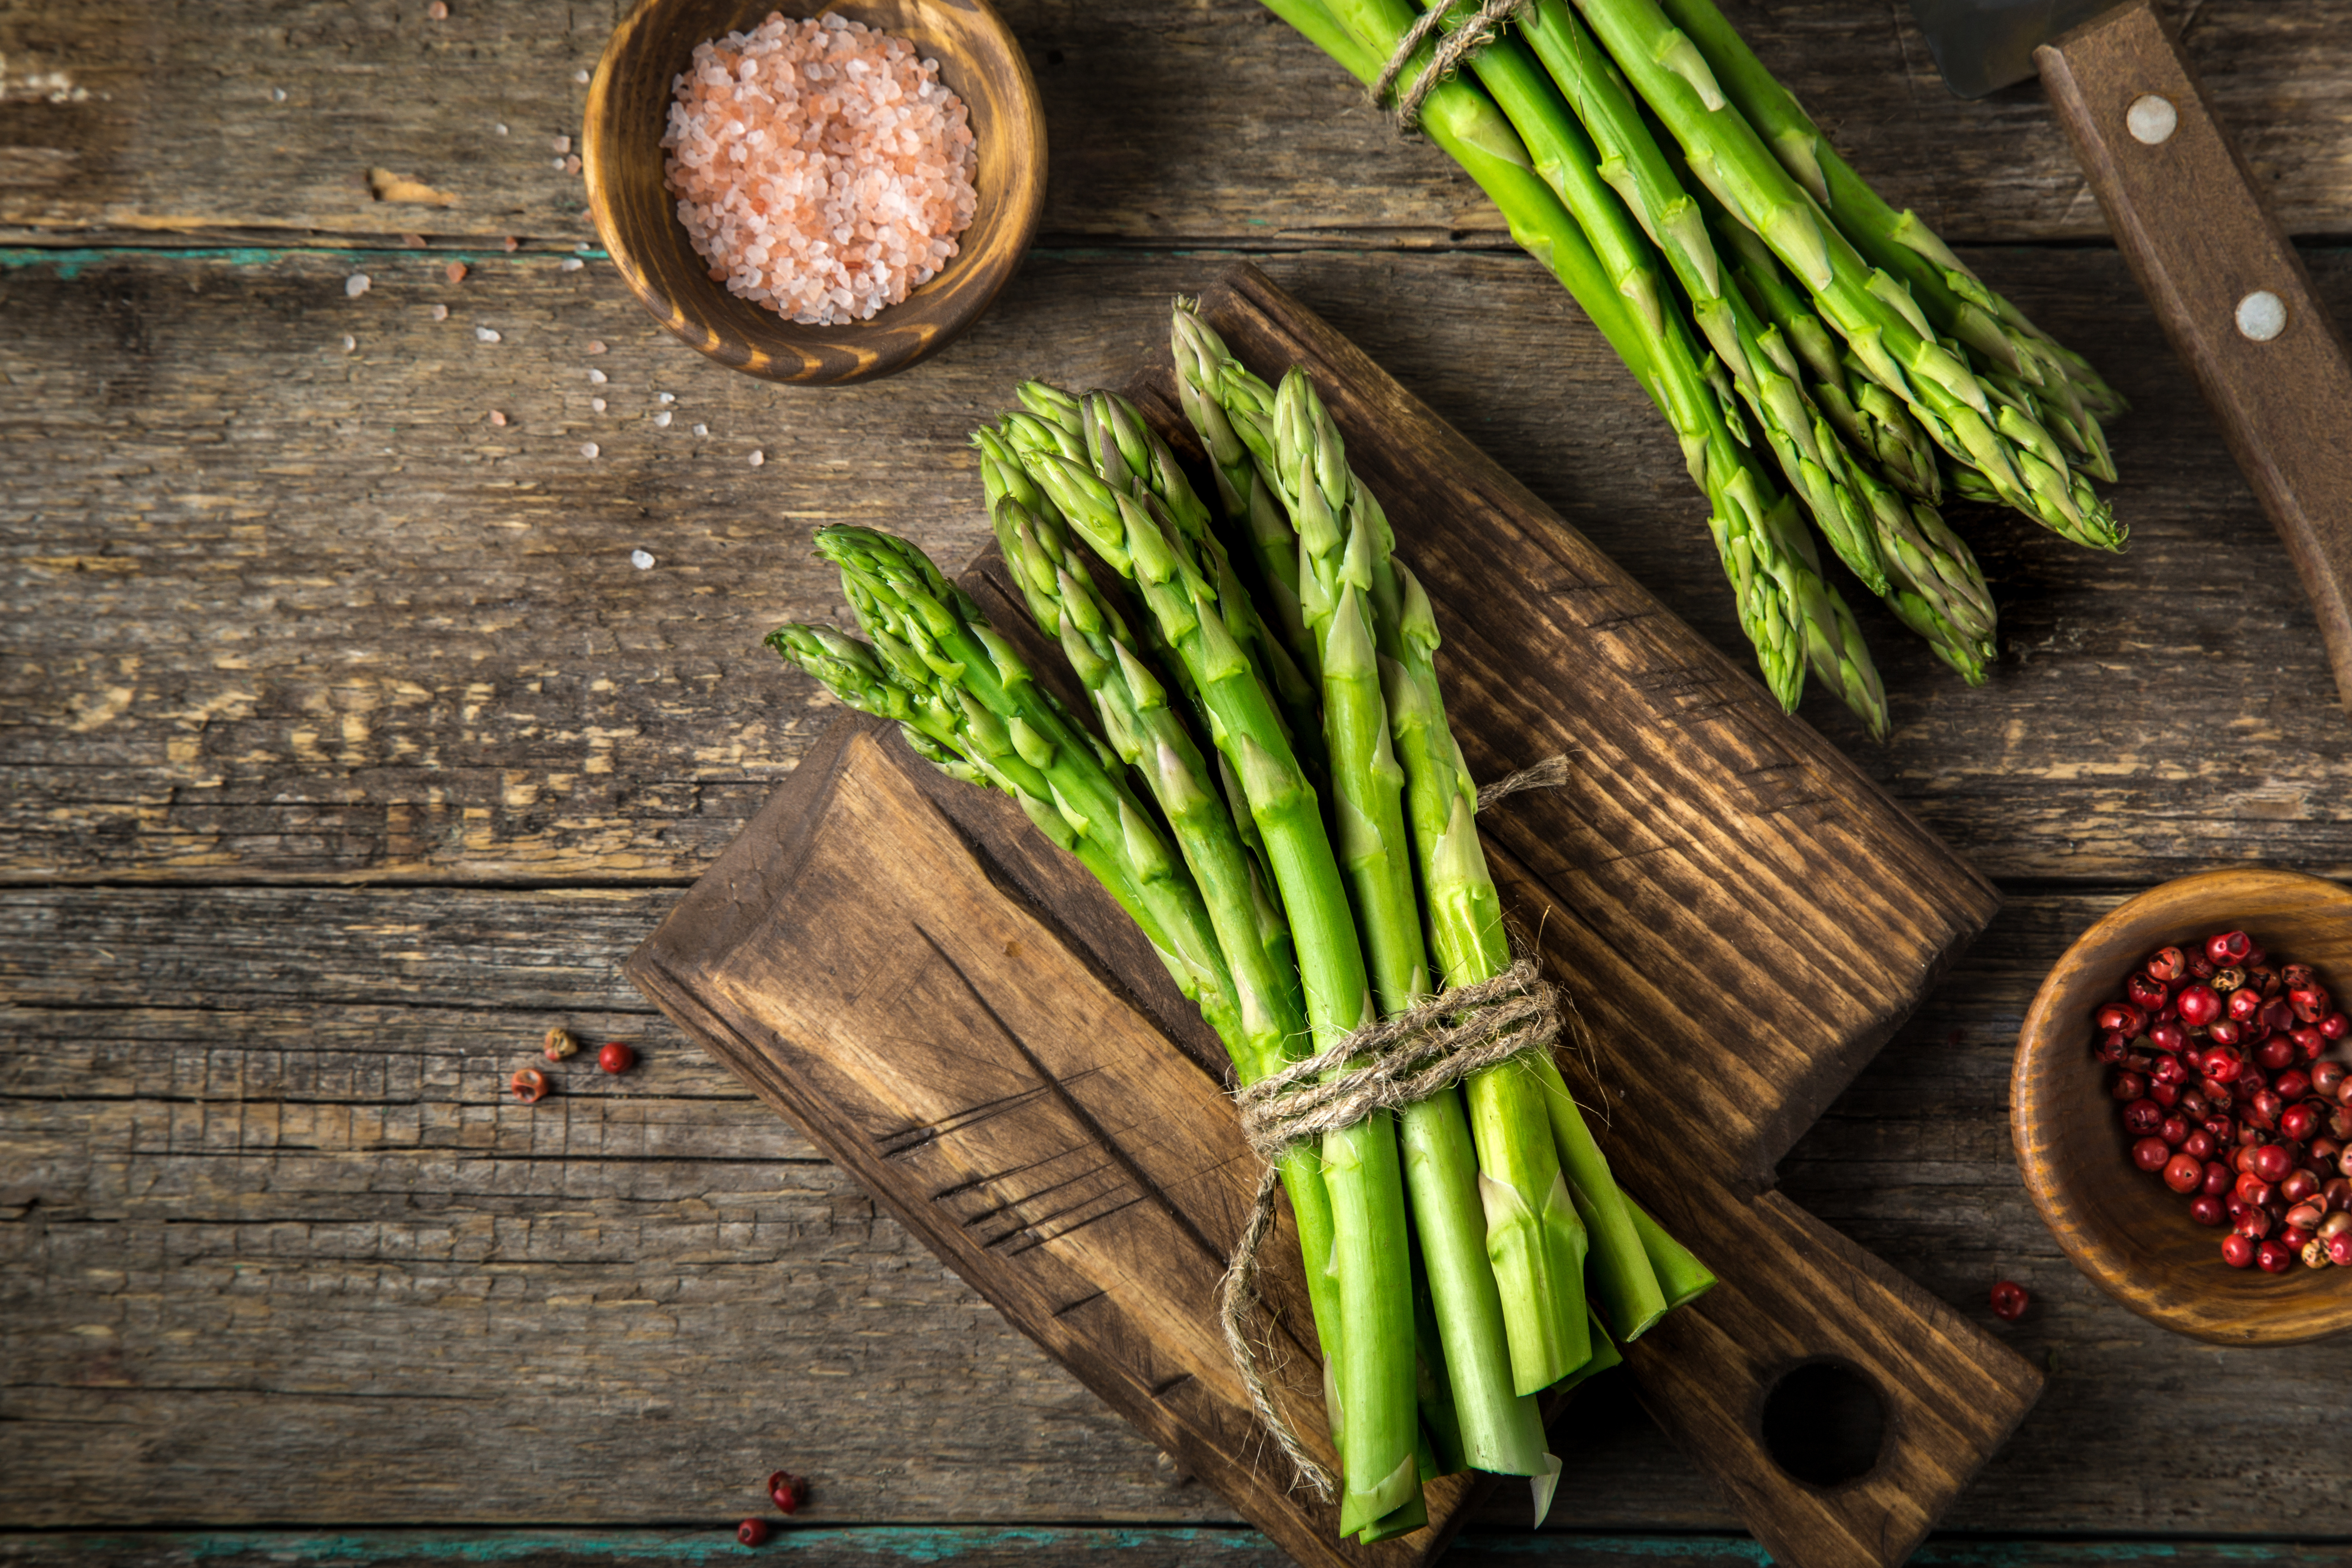 Veggie of the month - Asparagus